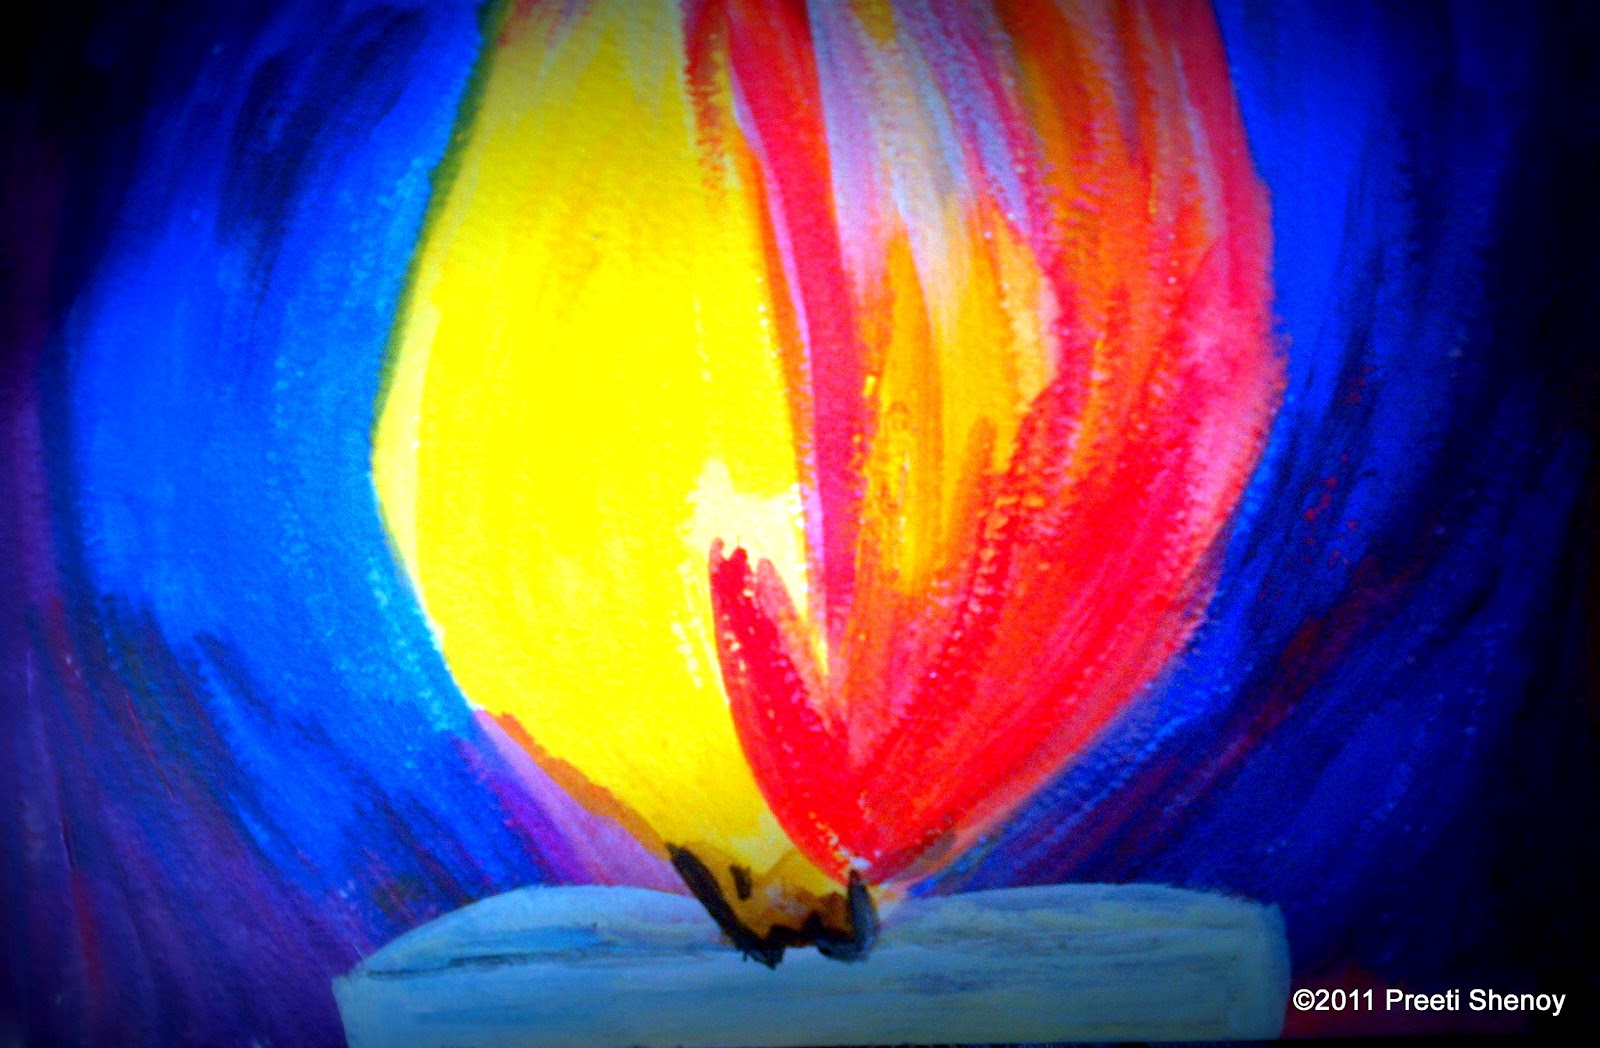 Preeti shenoy 39 s blog march 2012 for Can you paint candles with acrylic paint